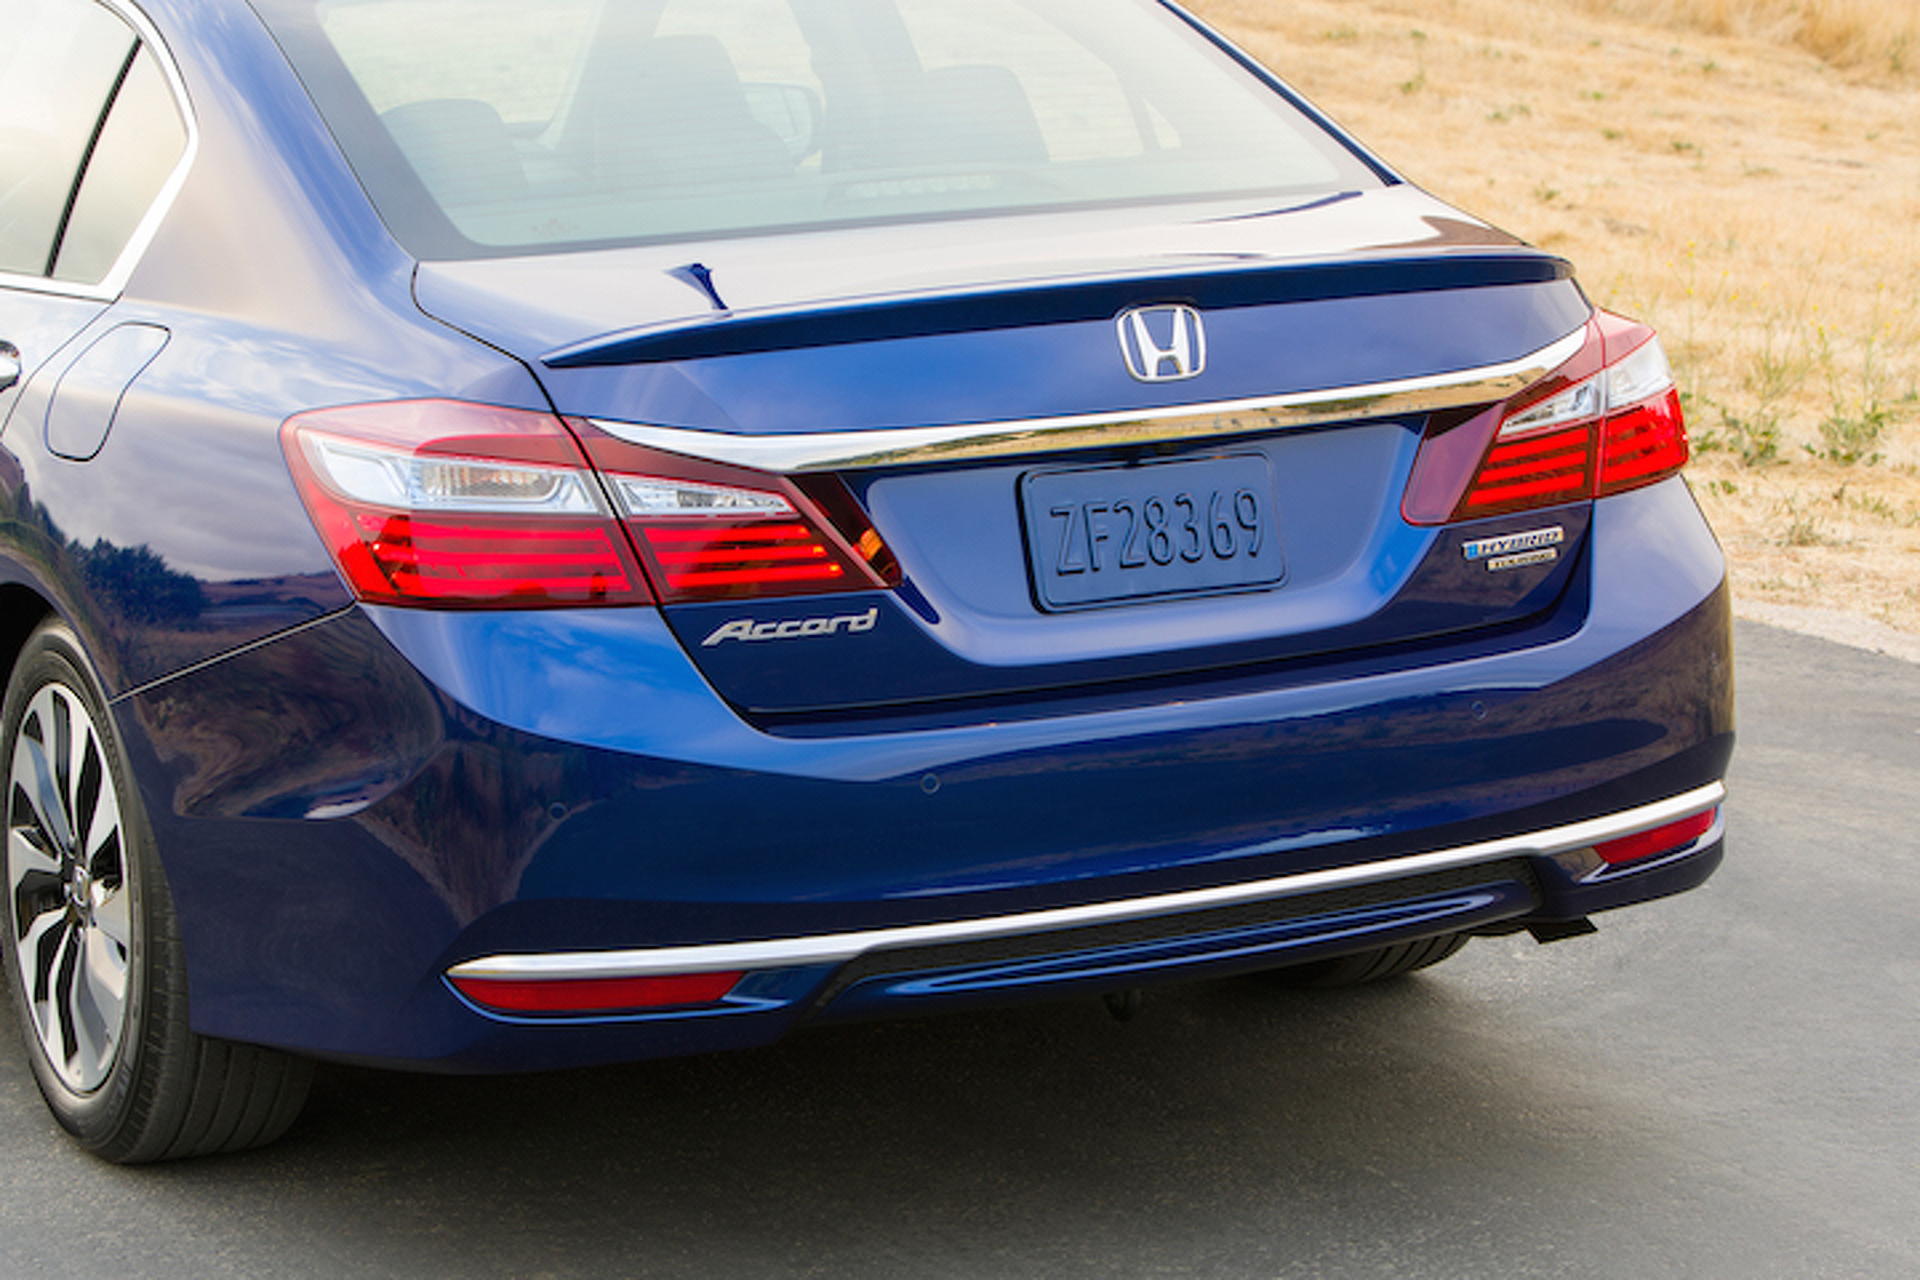 2017 Honda Accord Hybrid Blends Sedan Sensibility With Nsx Tech First Drive